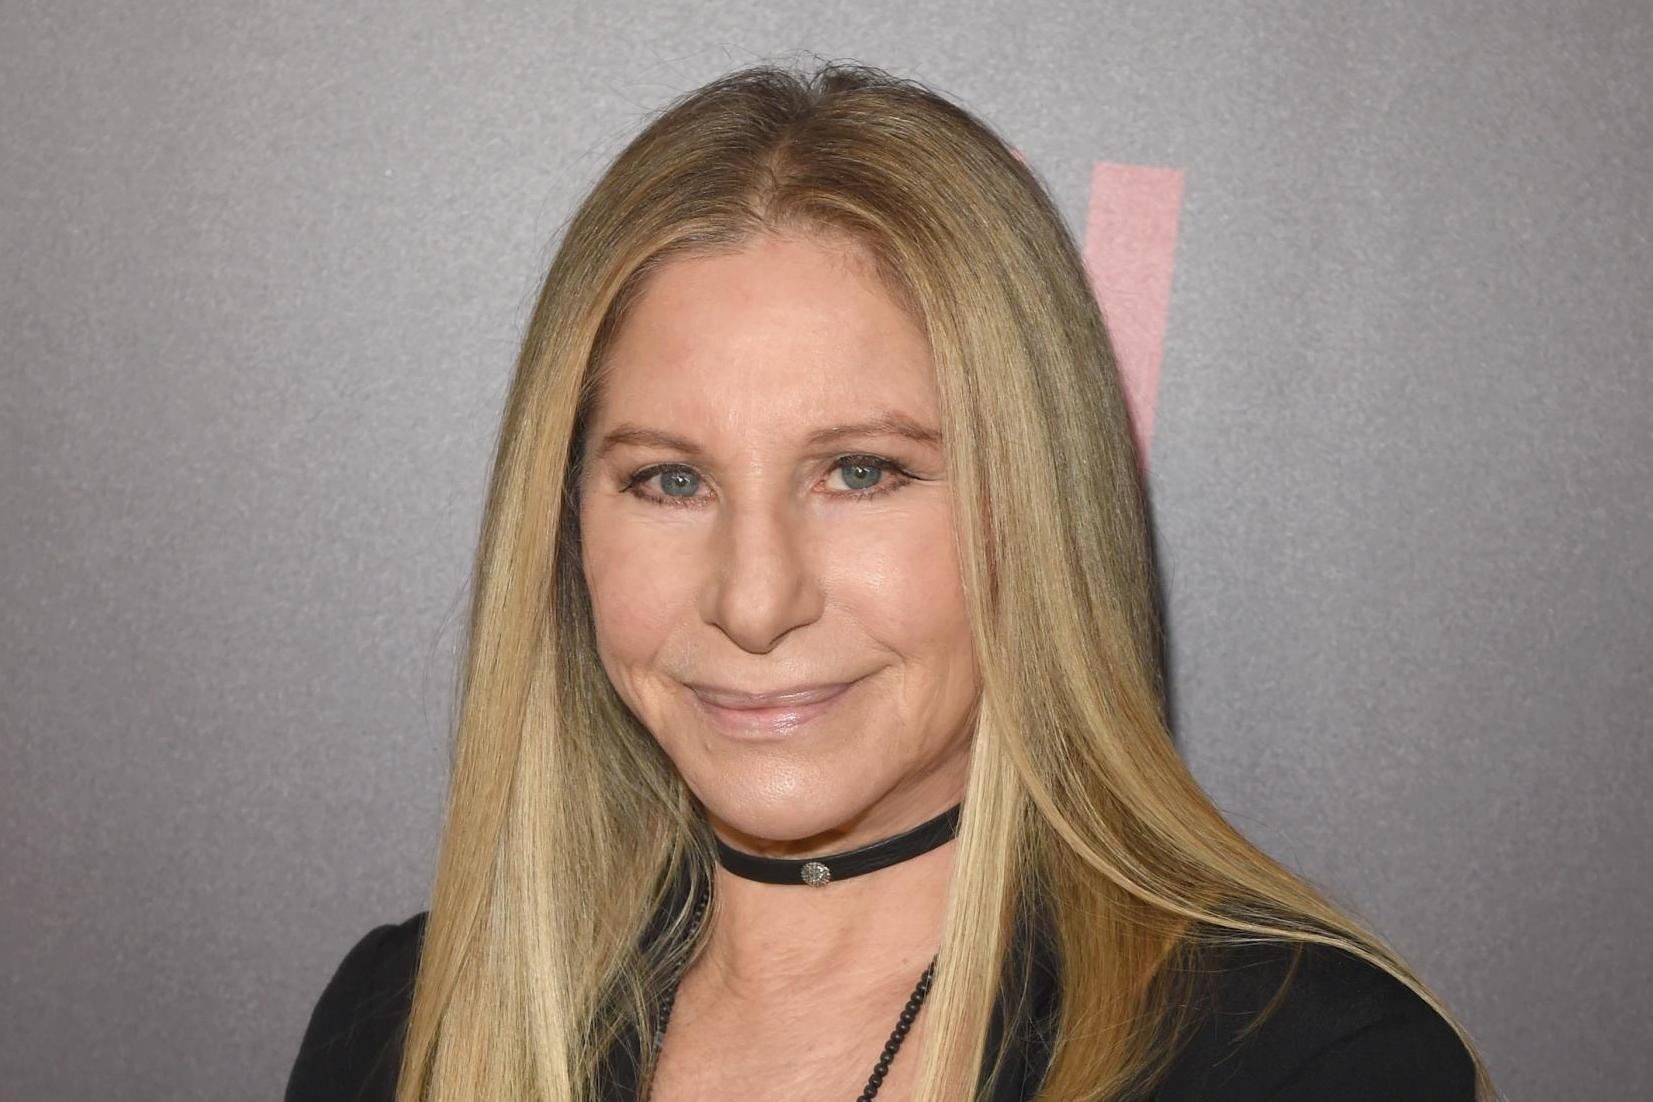 Barbra Streisand reveals she cloned dog because she 'couldn't bear to lose her'